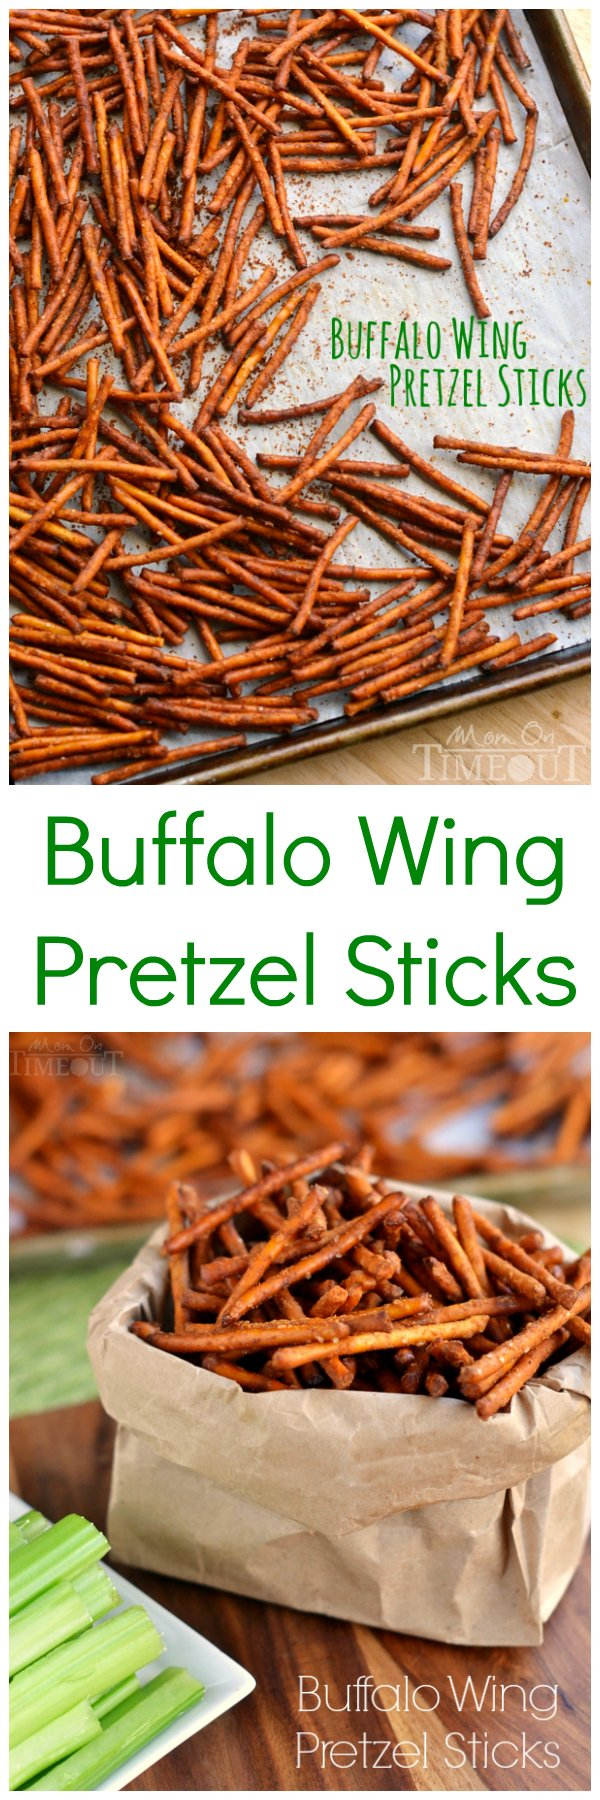 These Buffalo Wing Pretzel Sticks are the perfect snack to enjoy while watching the game! | MomOnTimeout.com | #recipe #appetizer #football #snack